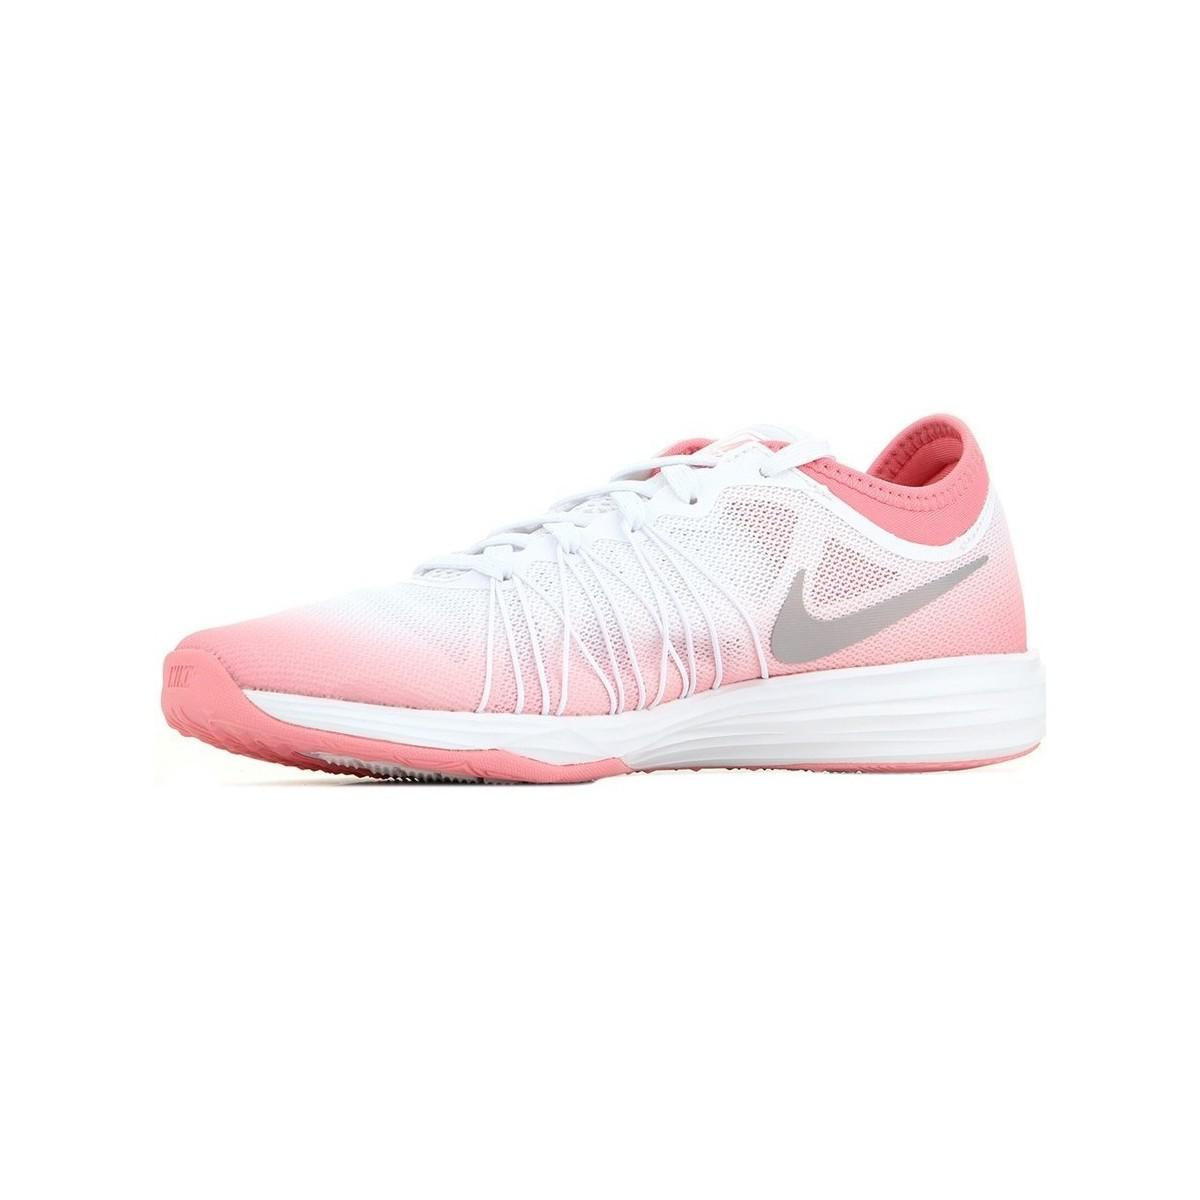 2018 For Sale Nike Dual Fusion TR Hit Prm women's Shoes (Trainers) in Free Shipping With Mastercard All Size Good Selling Sale Online Sale 2018 GgyoAWTNE